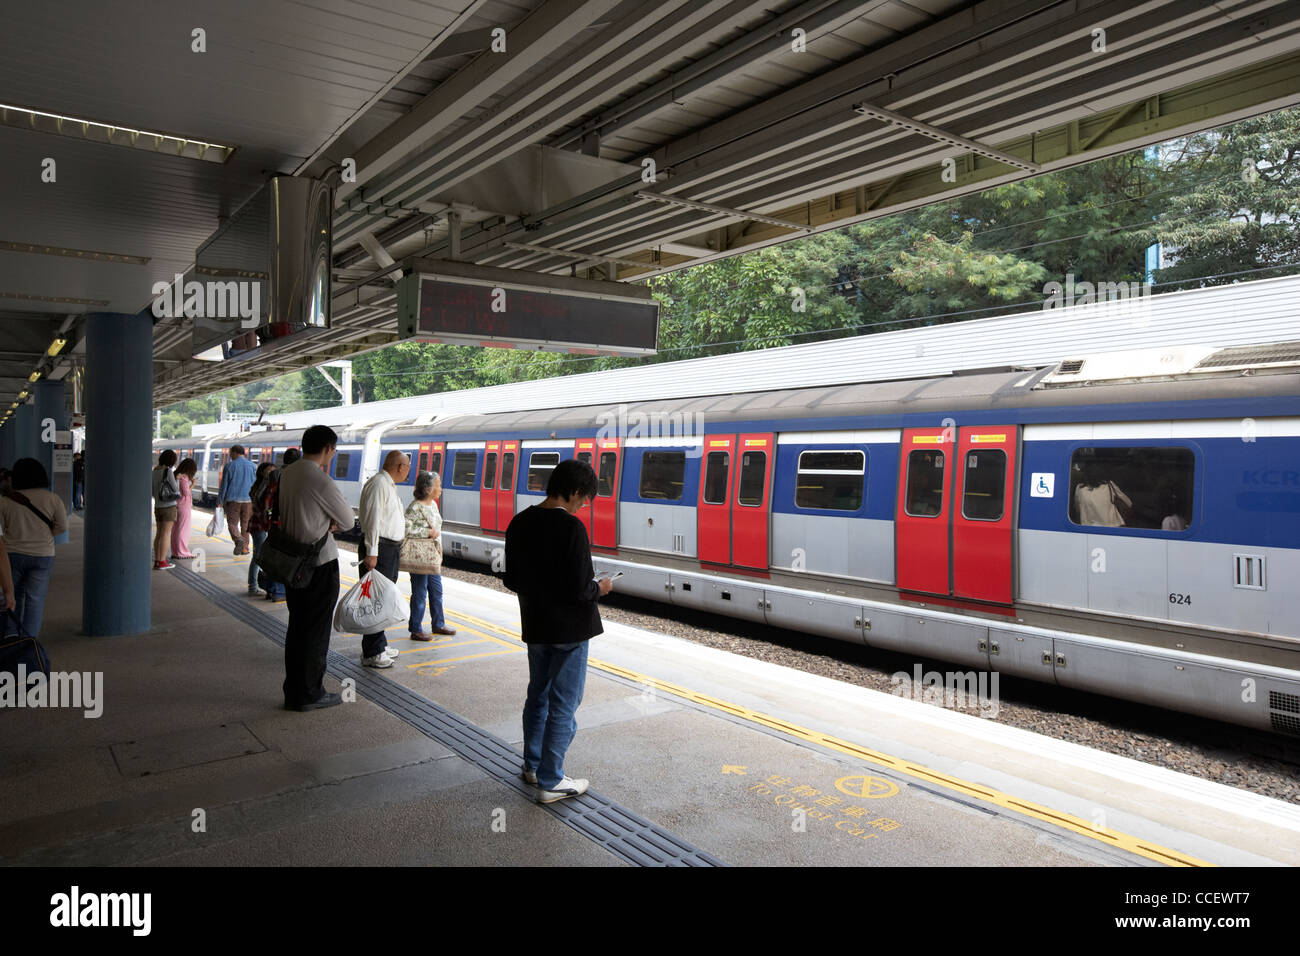 passengers waiting on the platform for train on mtr overground line former kcr kowloon canton railway kowloon tong - Stock Image